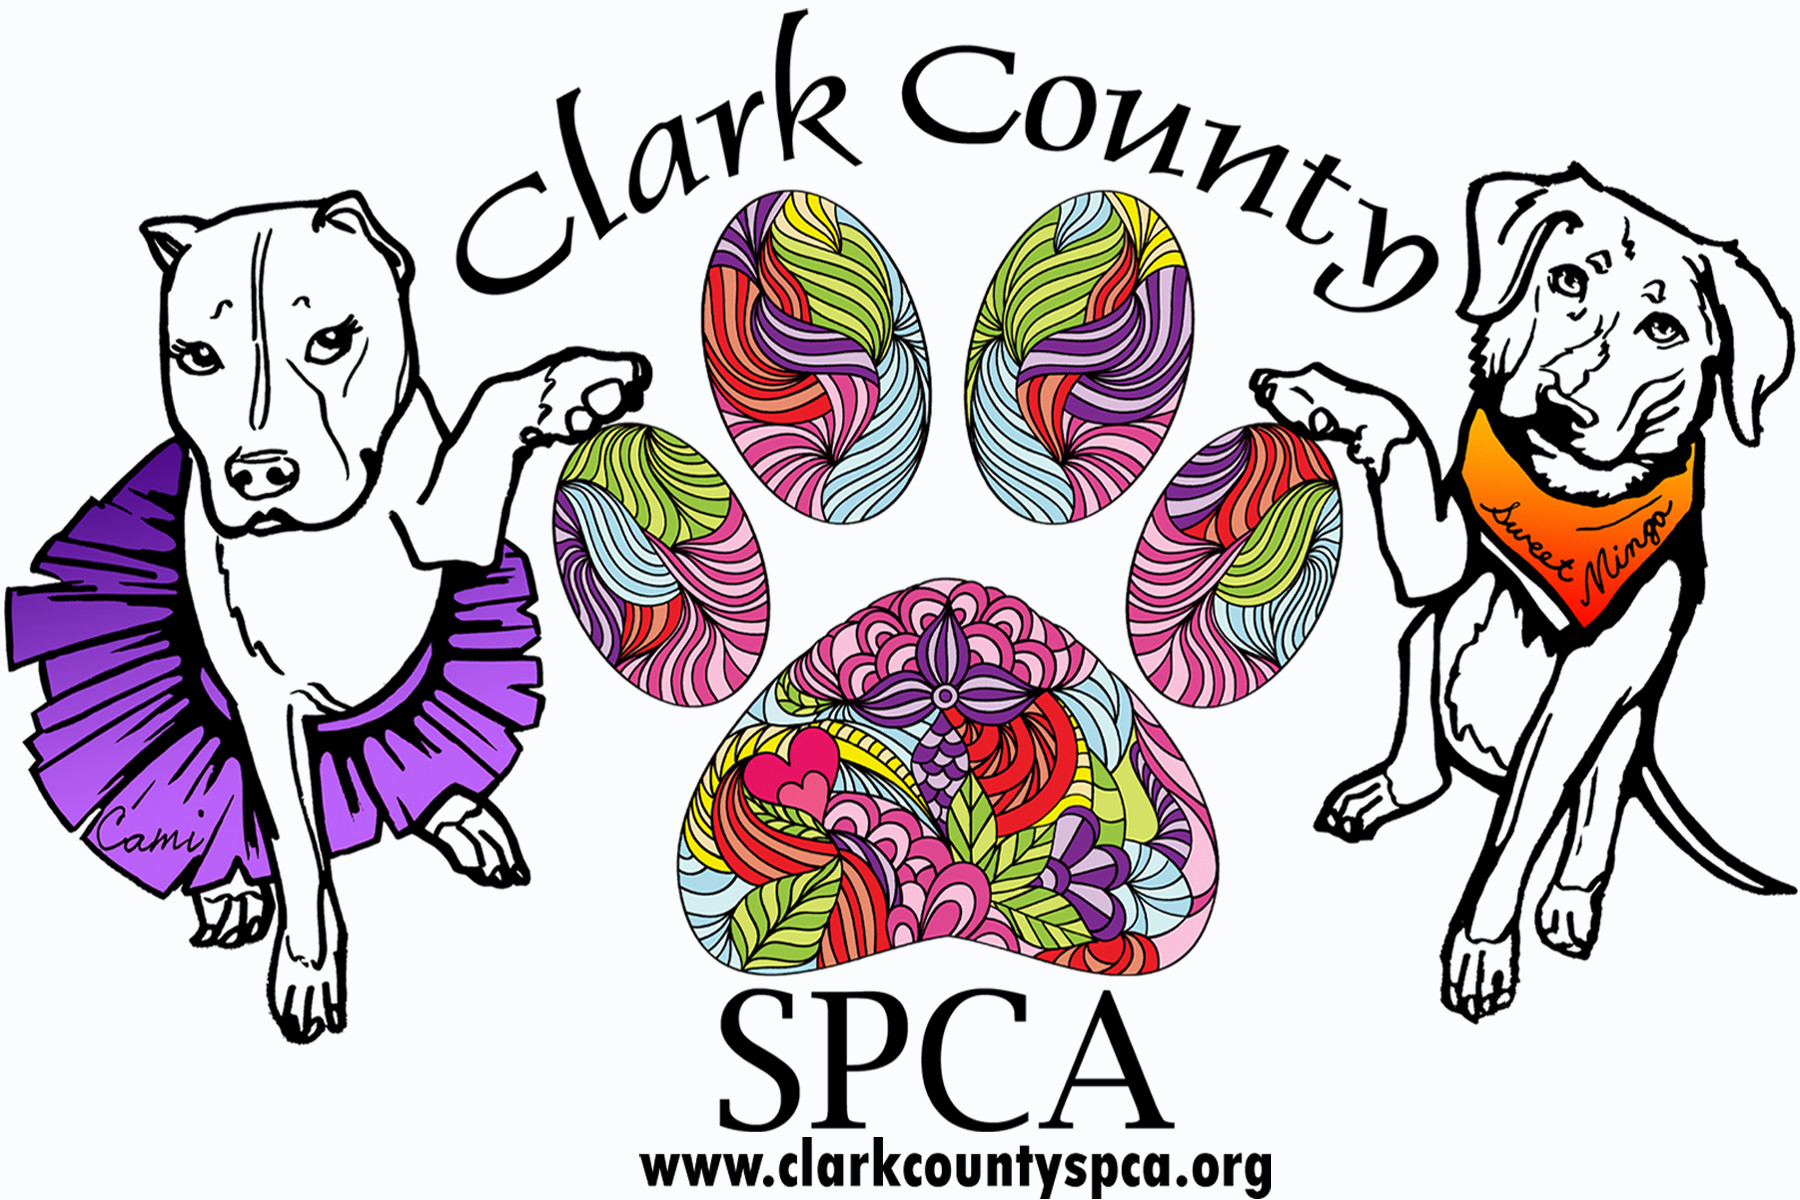 Clark County SPCA Inc.